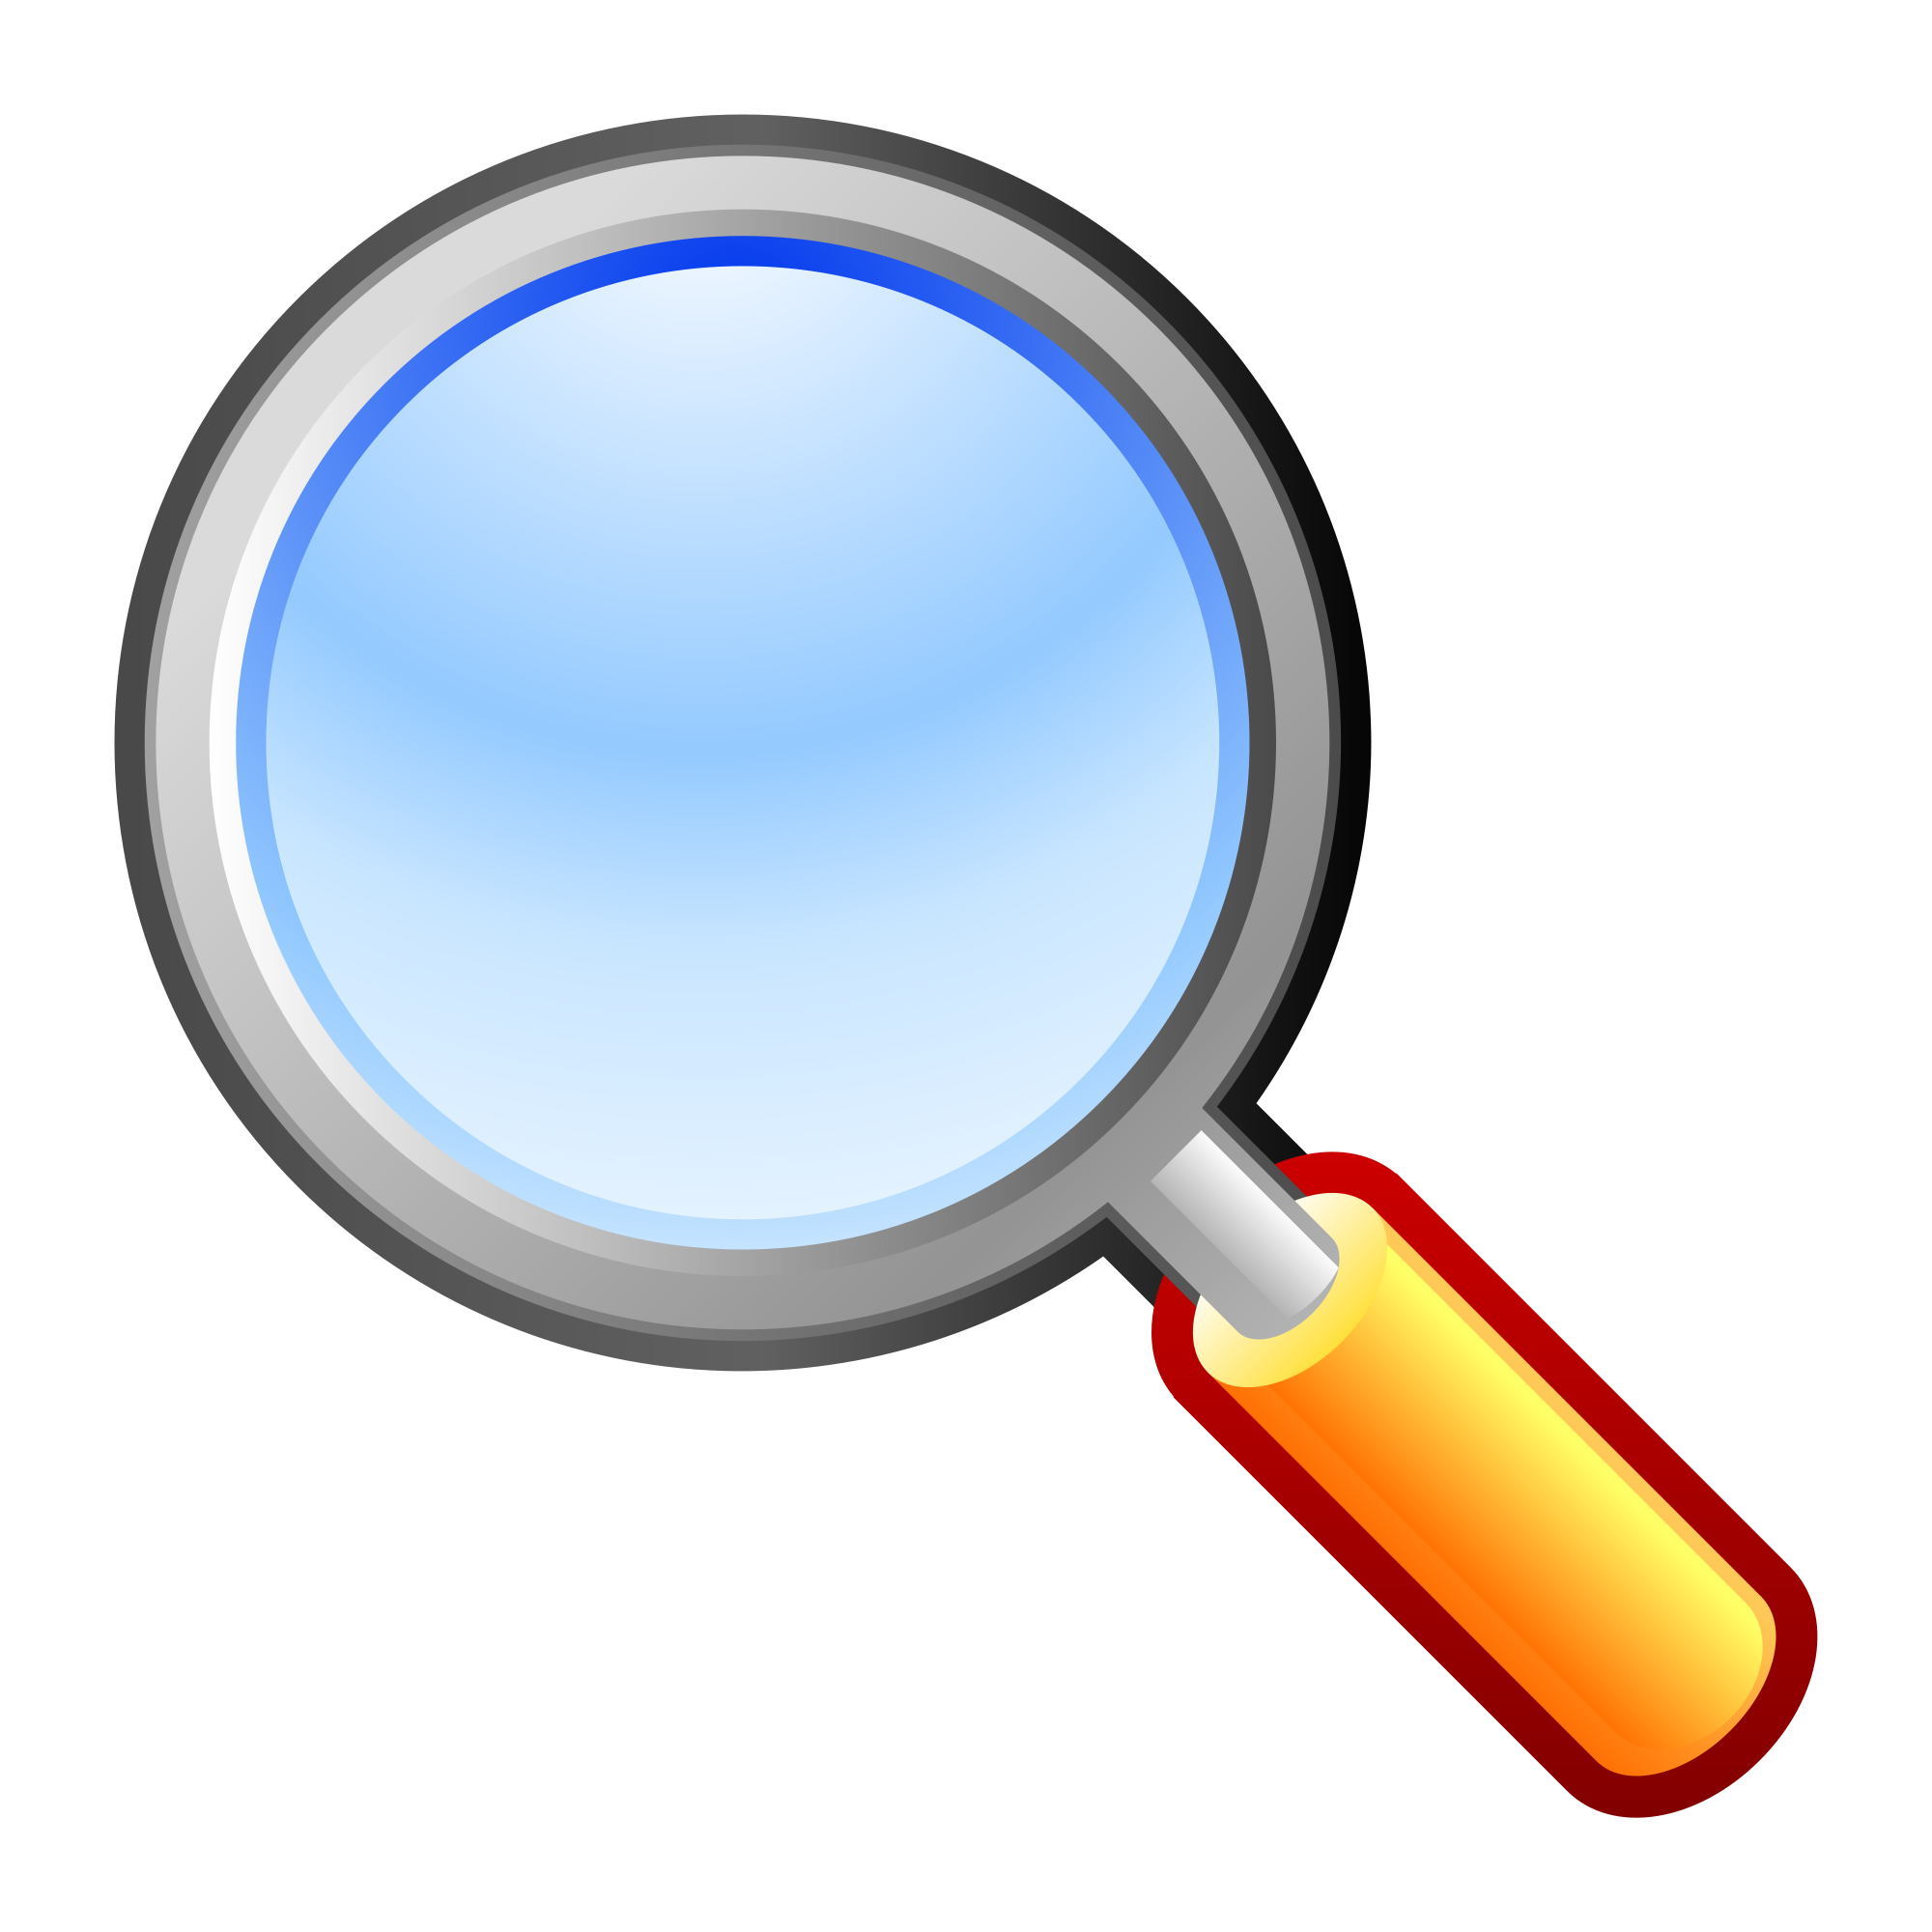 magnifying glass png transparent clipart best service clip art free service clipartof